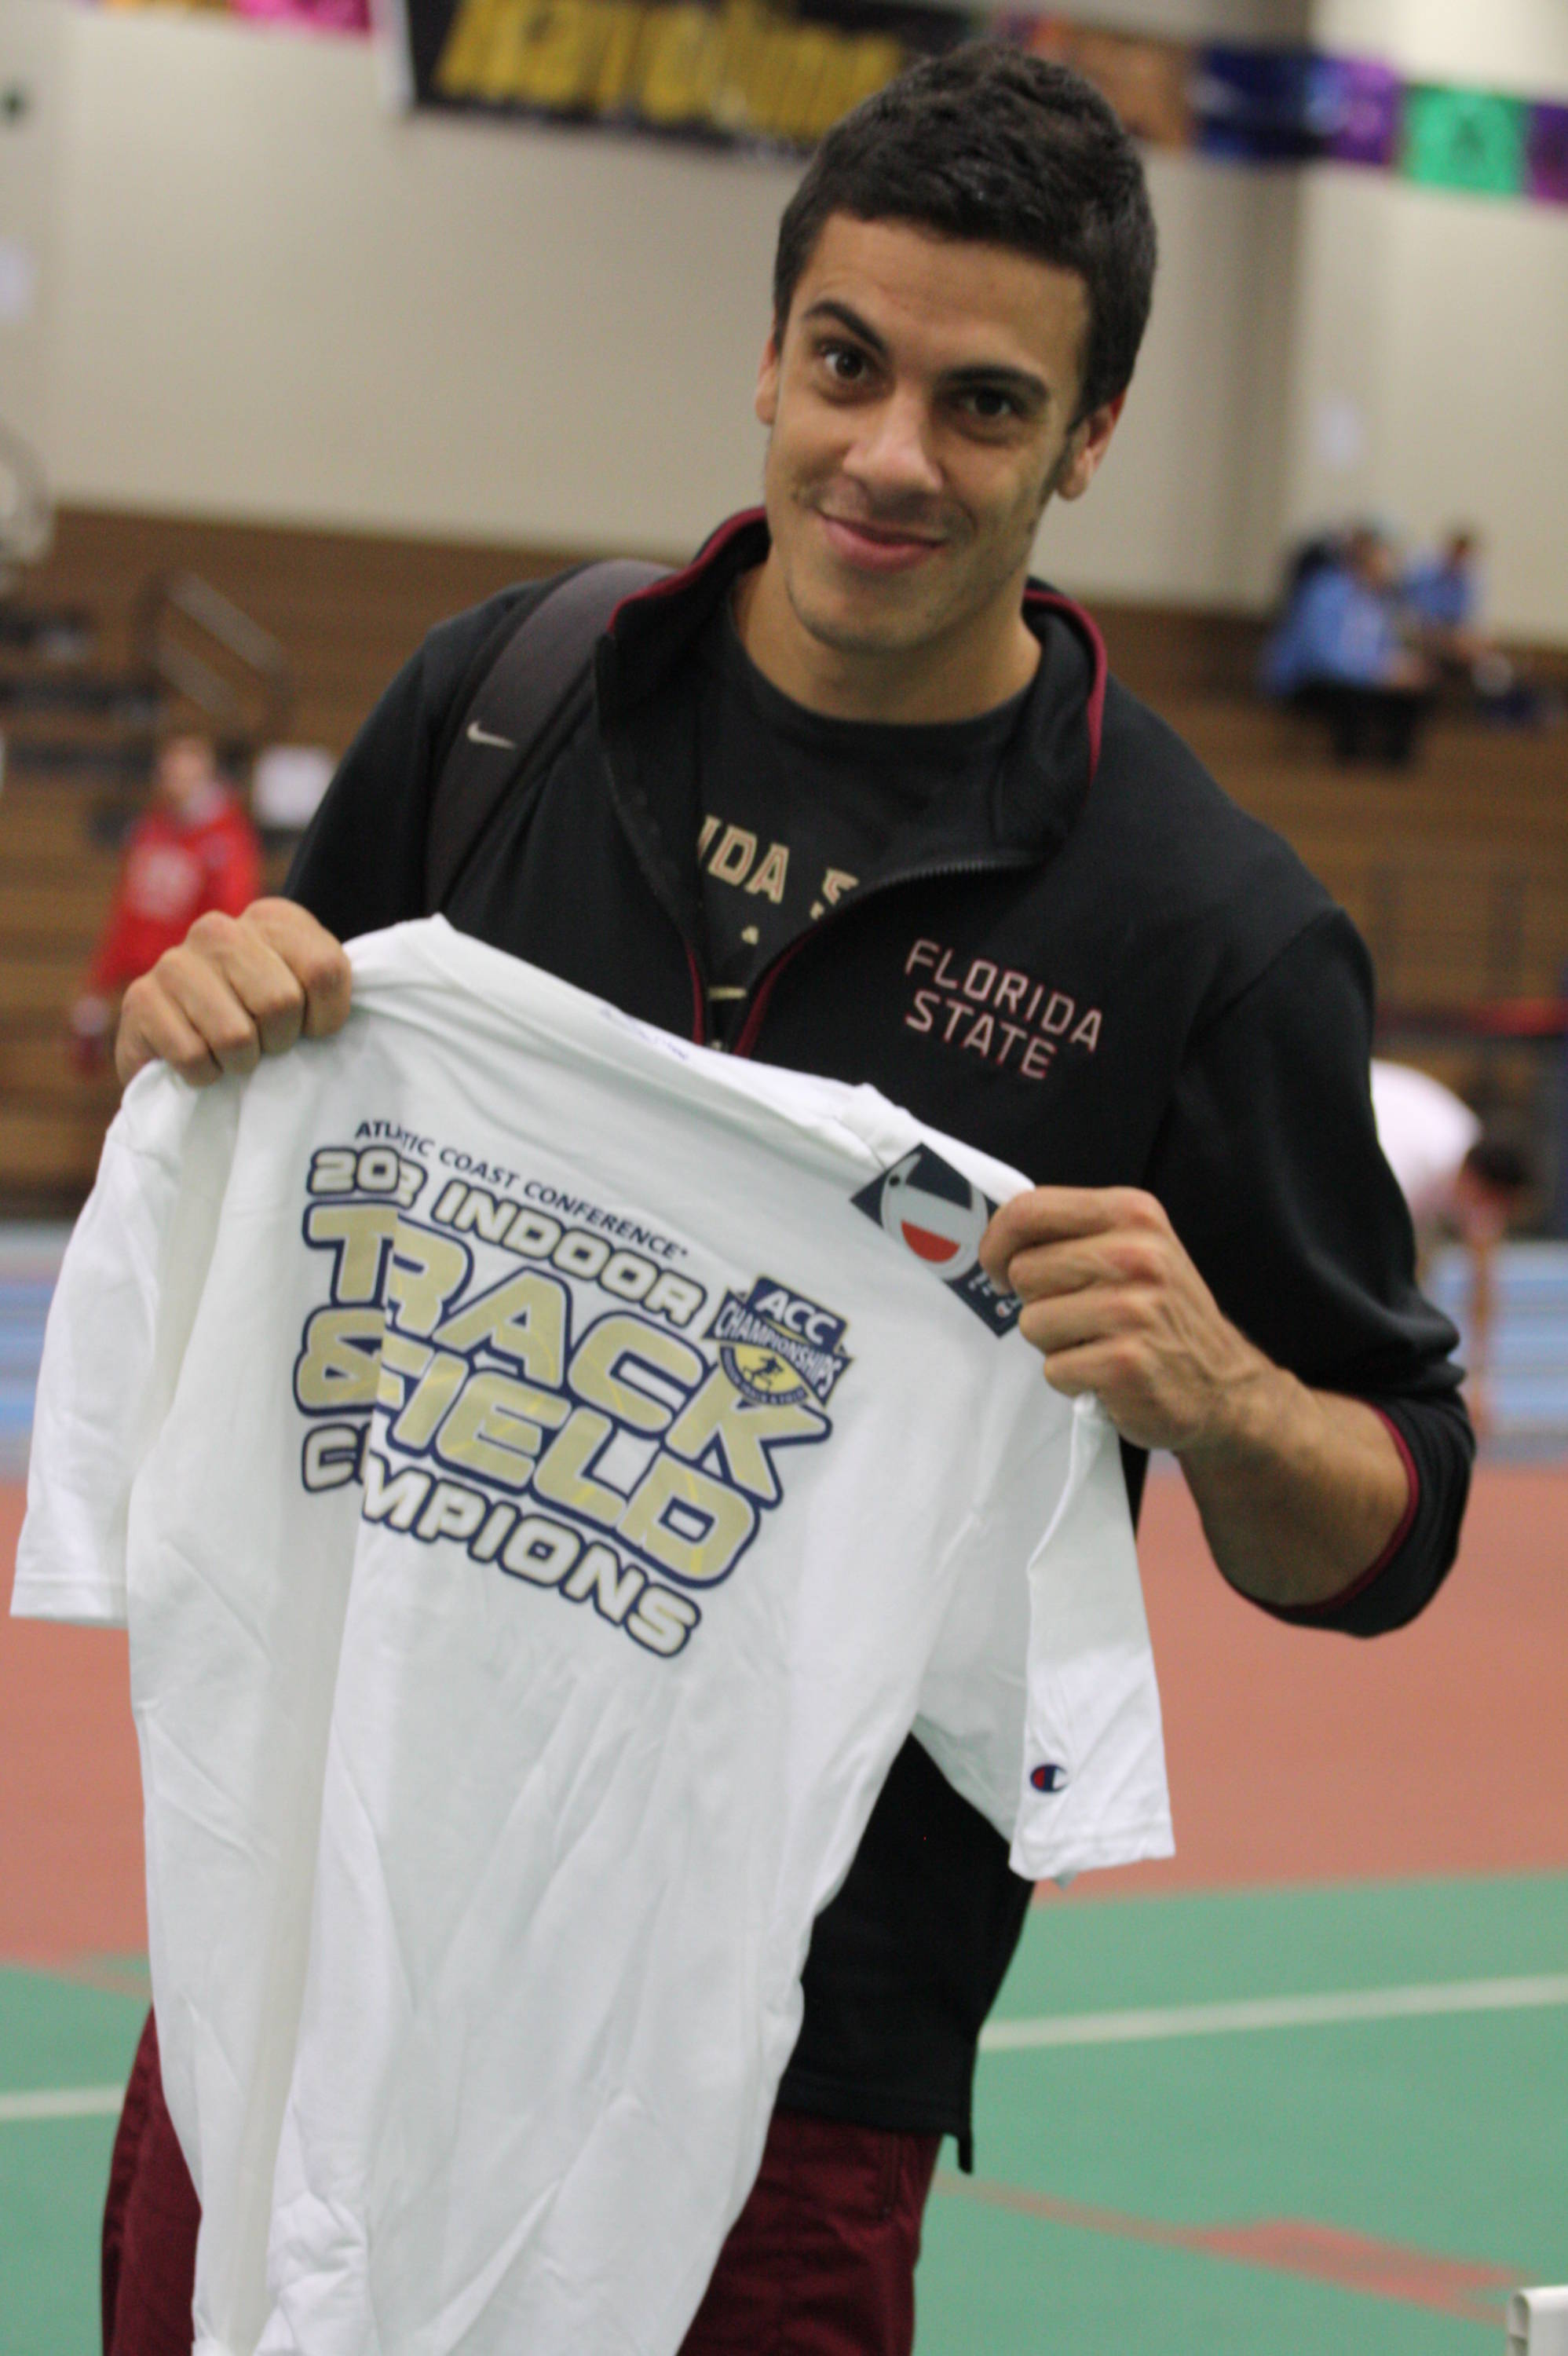 Gonzalo Barriolhet shows off his ACC Championship shirt.